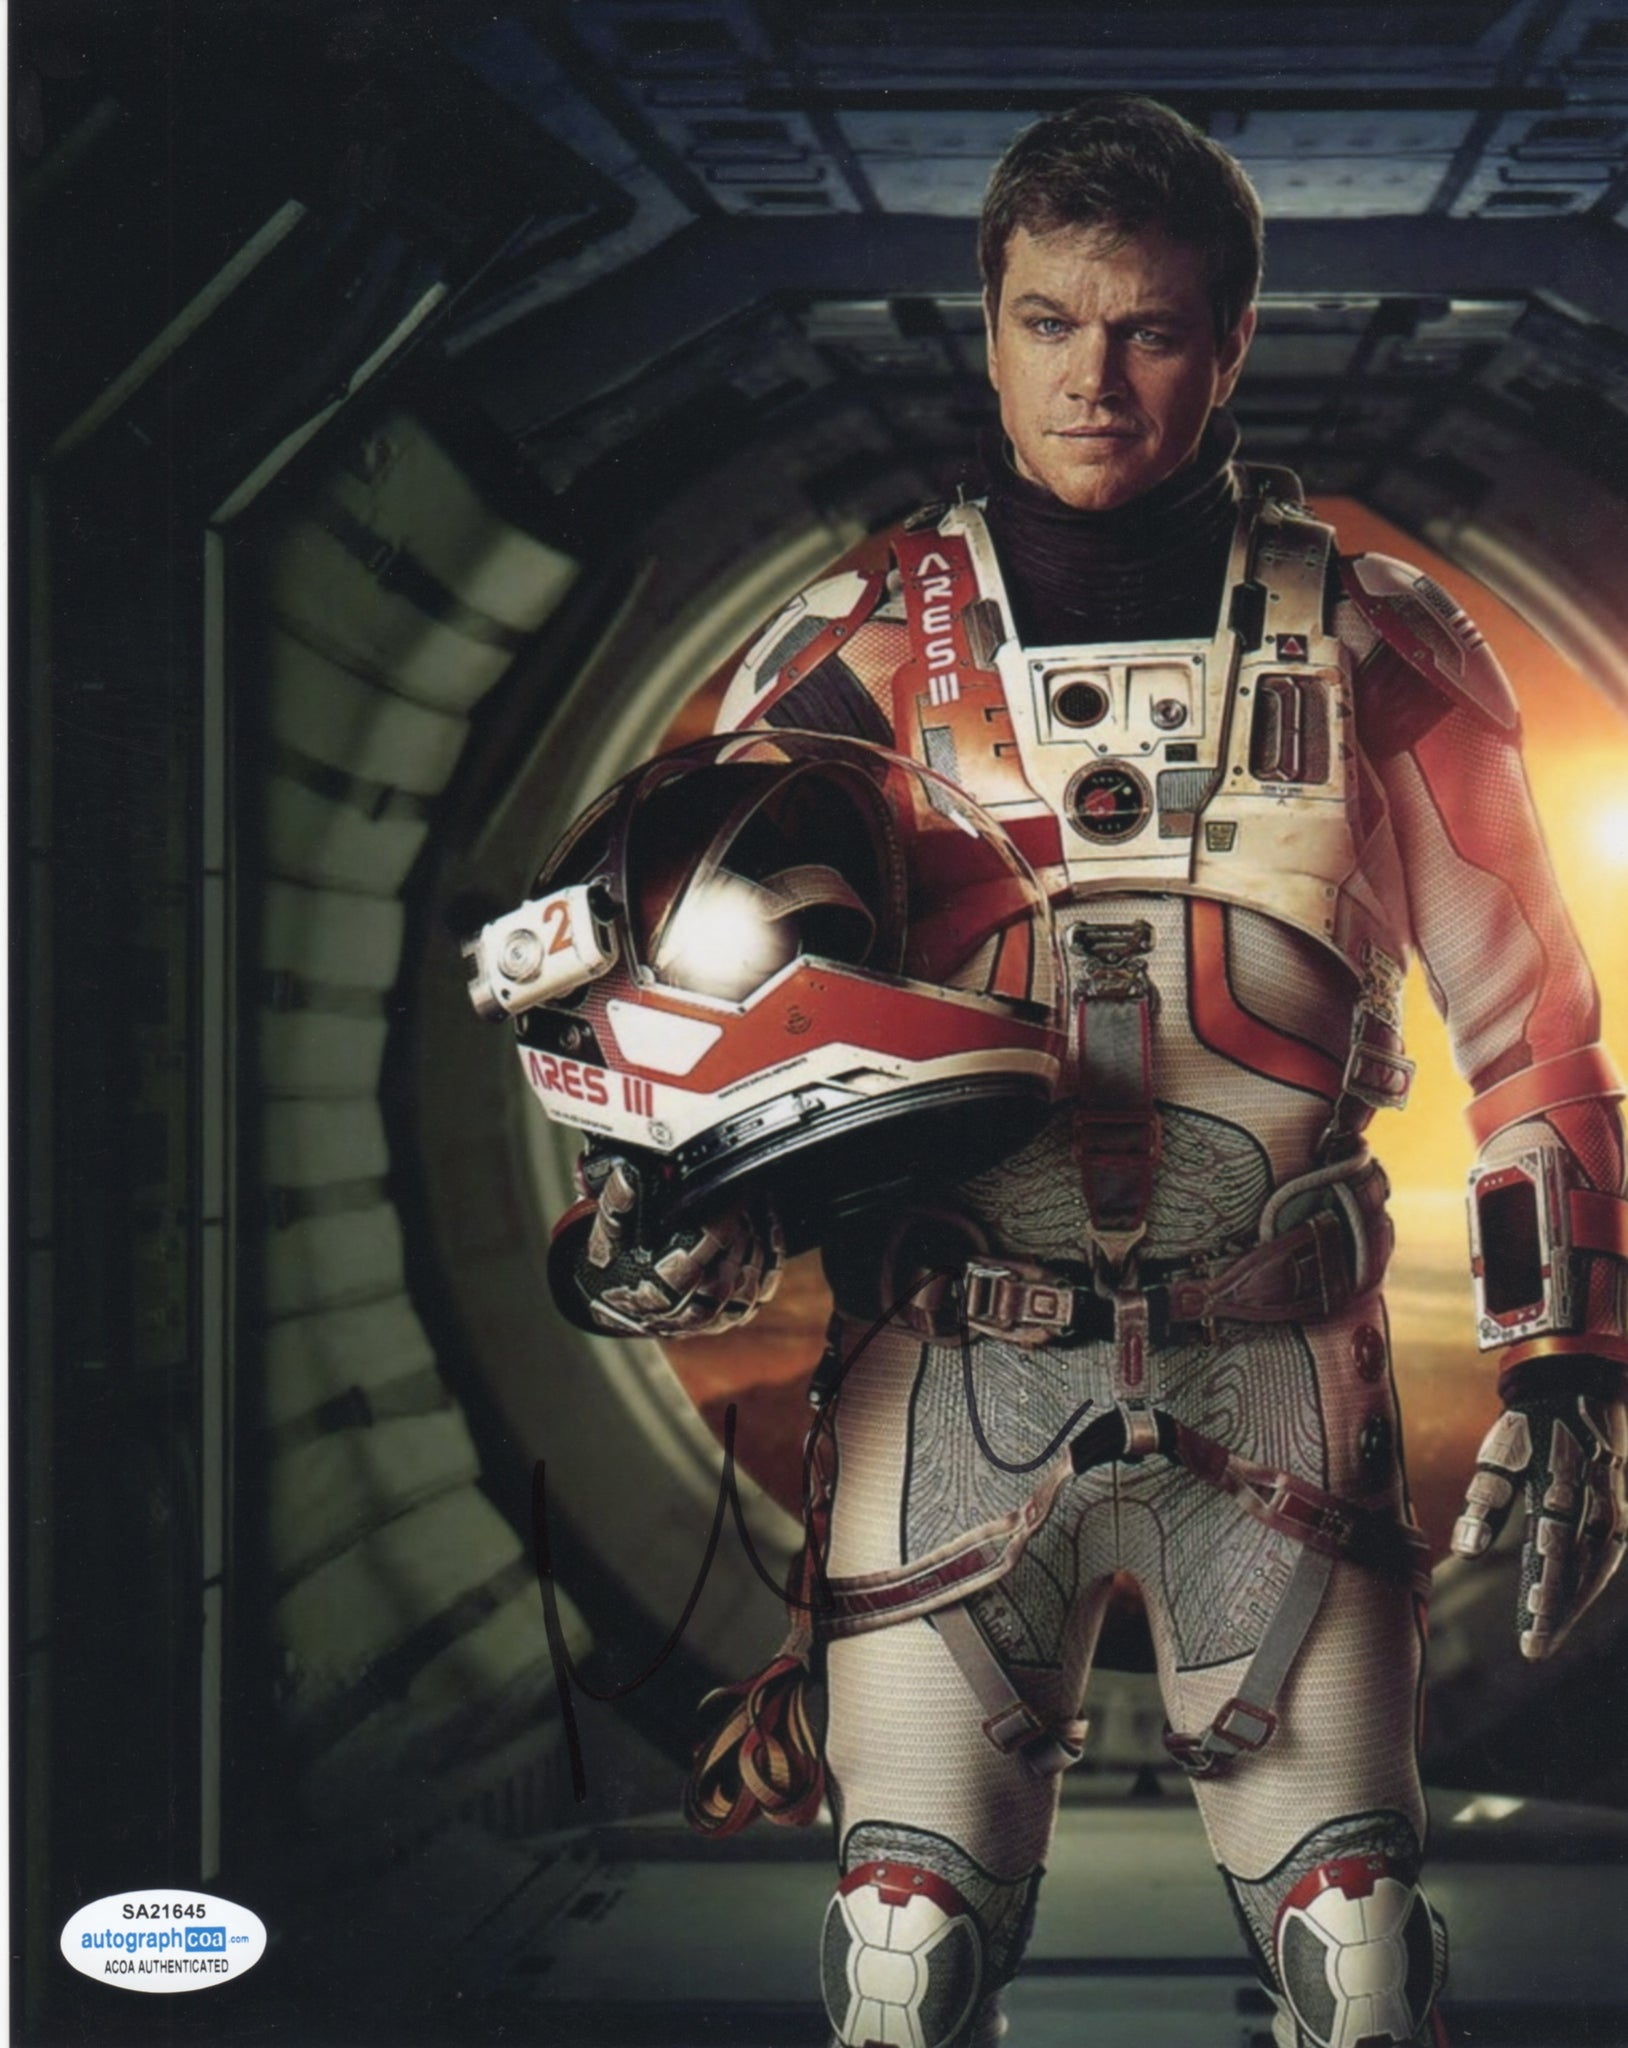 Matt Damon The Martian Signed Autograph 8x10 Photo ACOA - Outlaw Hobbies Authentic Autographs